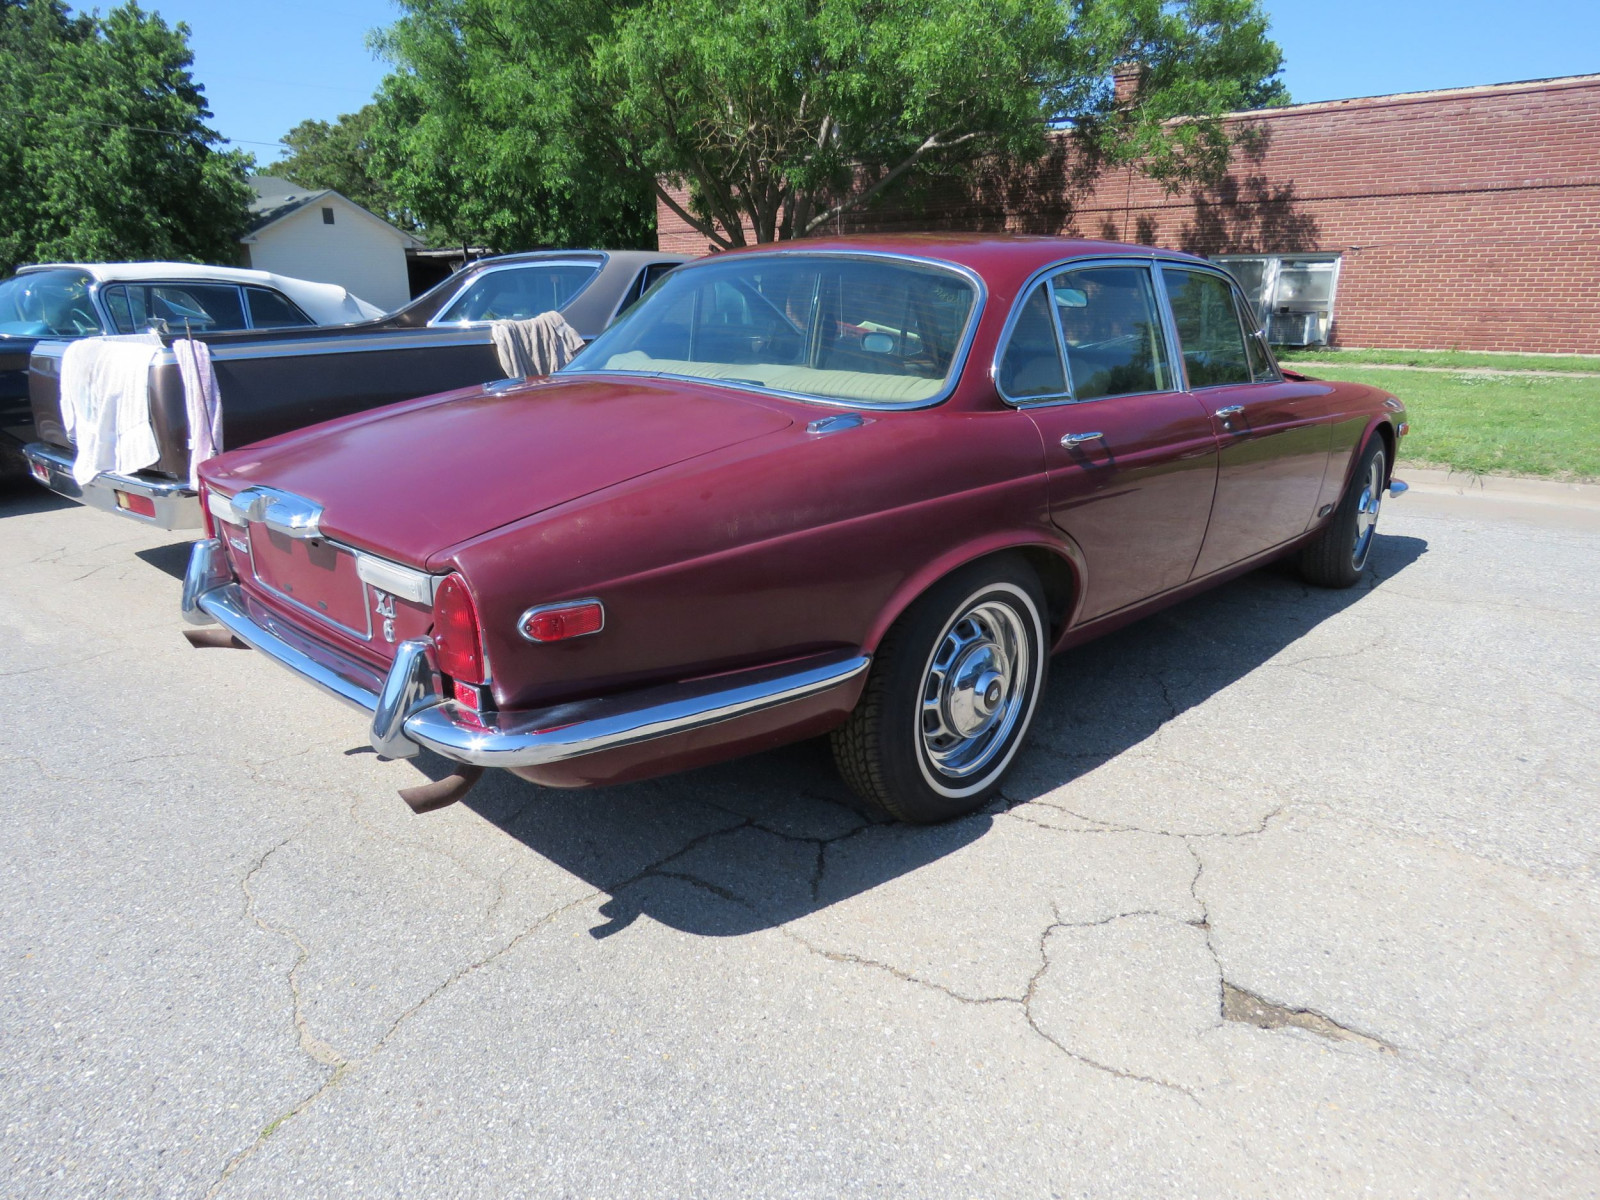 1973 JAGUAR XJ6 4DR SEDAN - Image 5